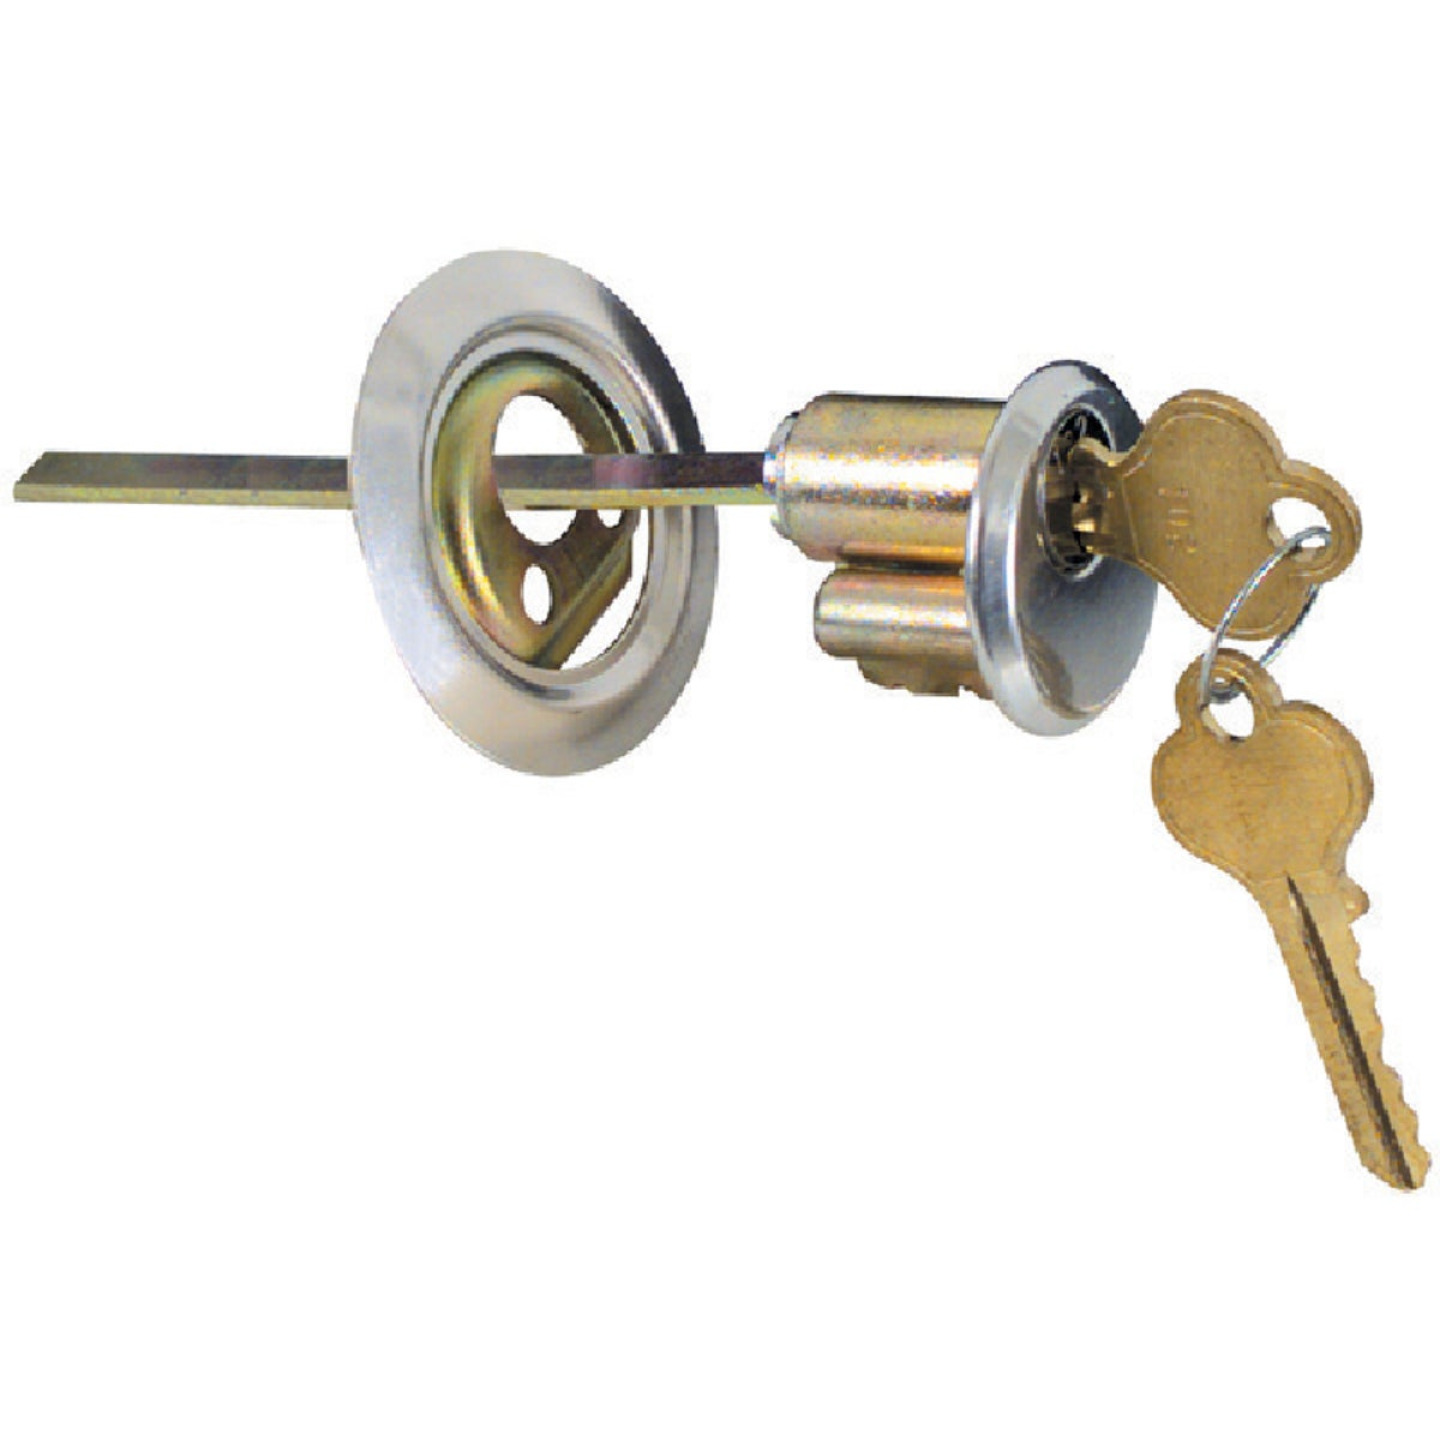 National Dead Bolt Rim Cylinder Image 4